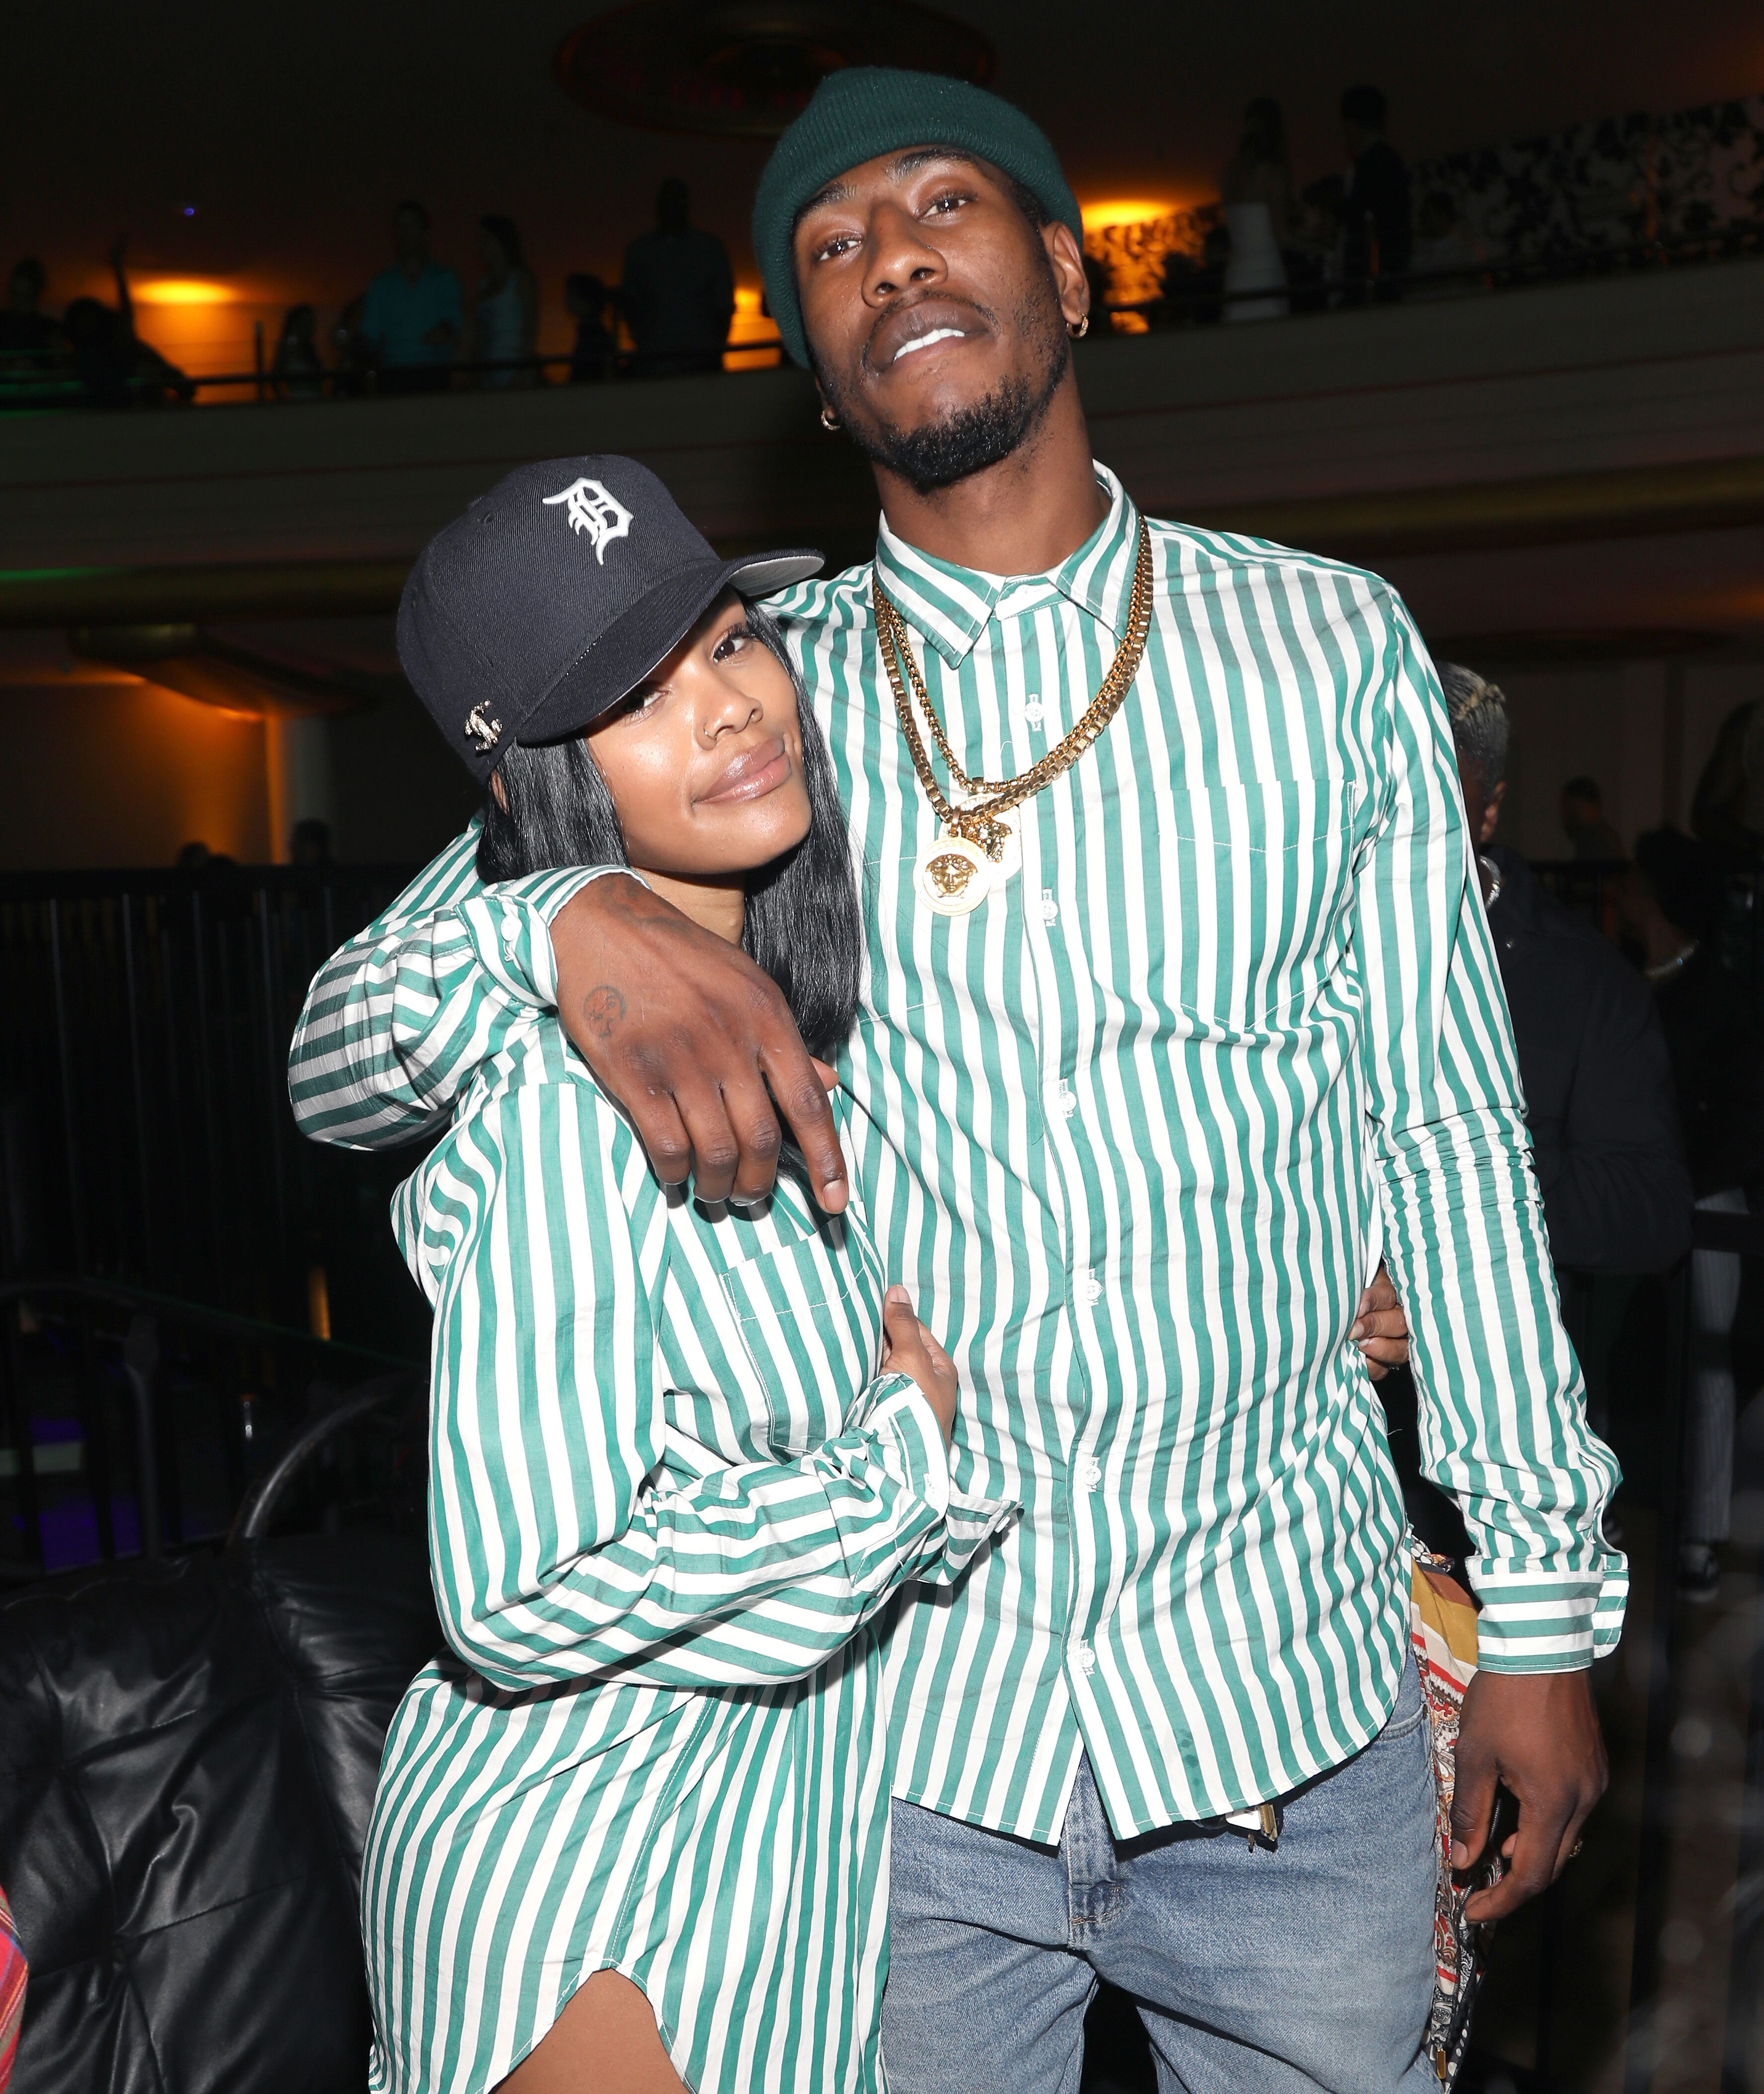 The proud parents of Baby Junie, Teyana Taylor and Iman Shumpert | Source: Getty Images/GlobalImagesUkraine